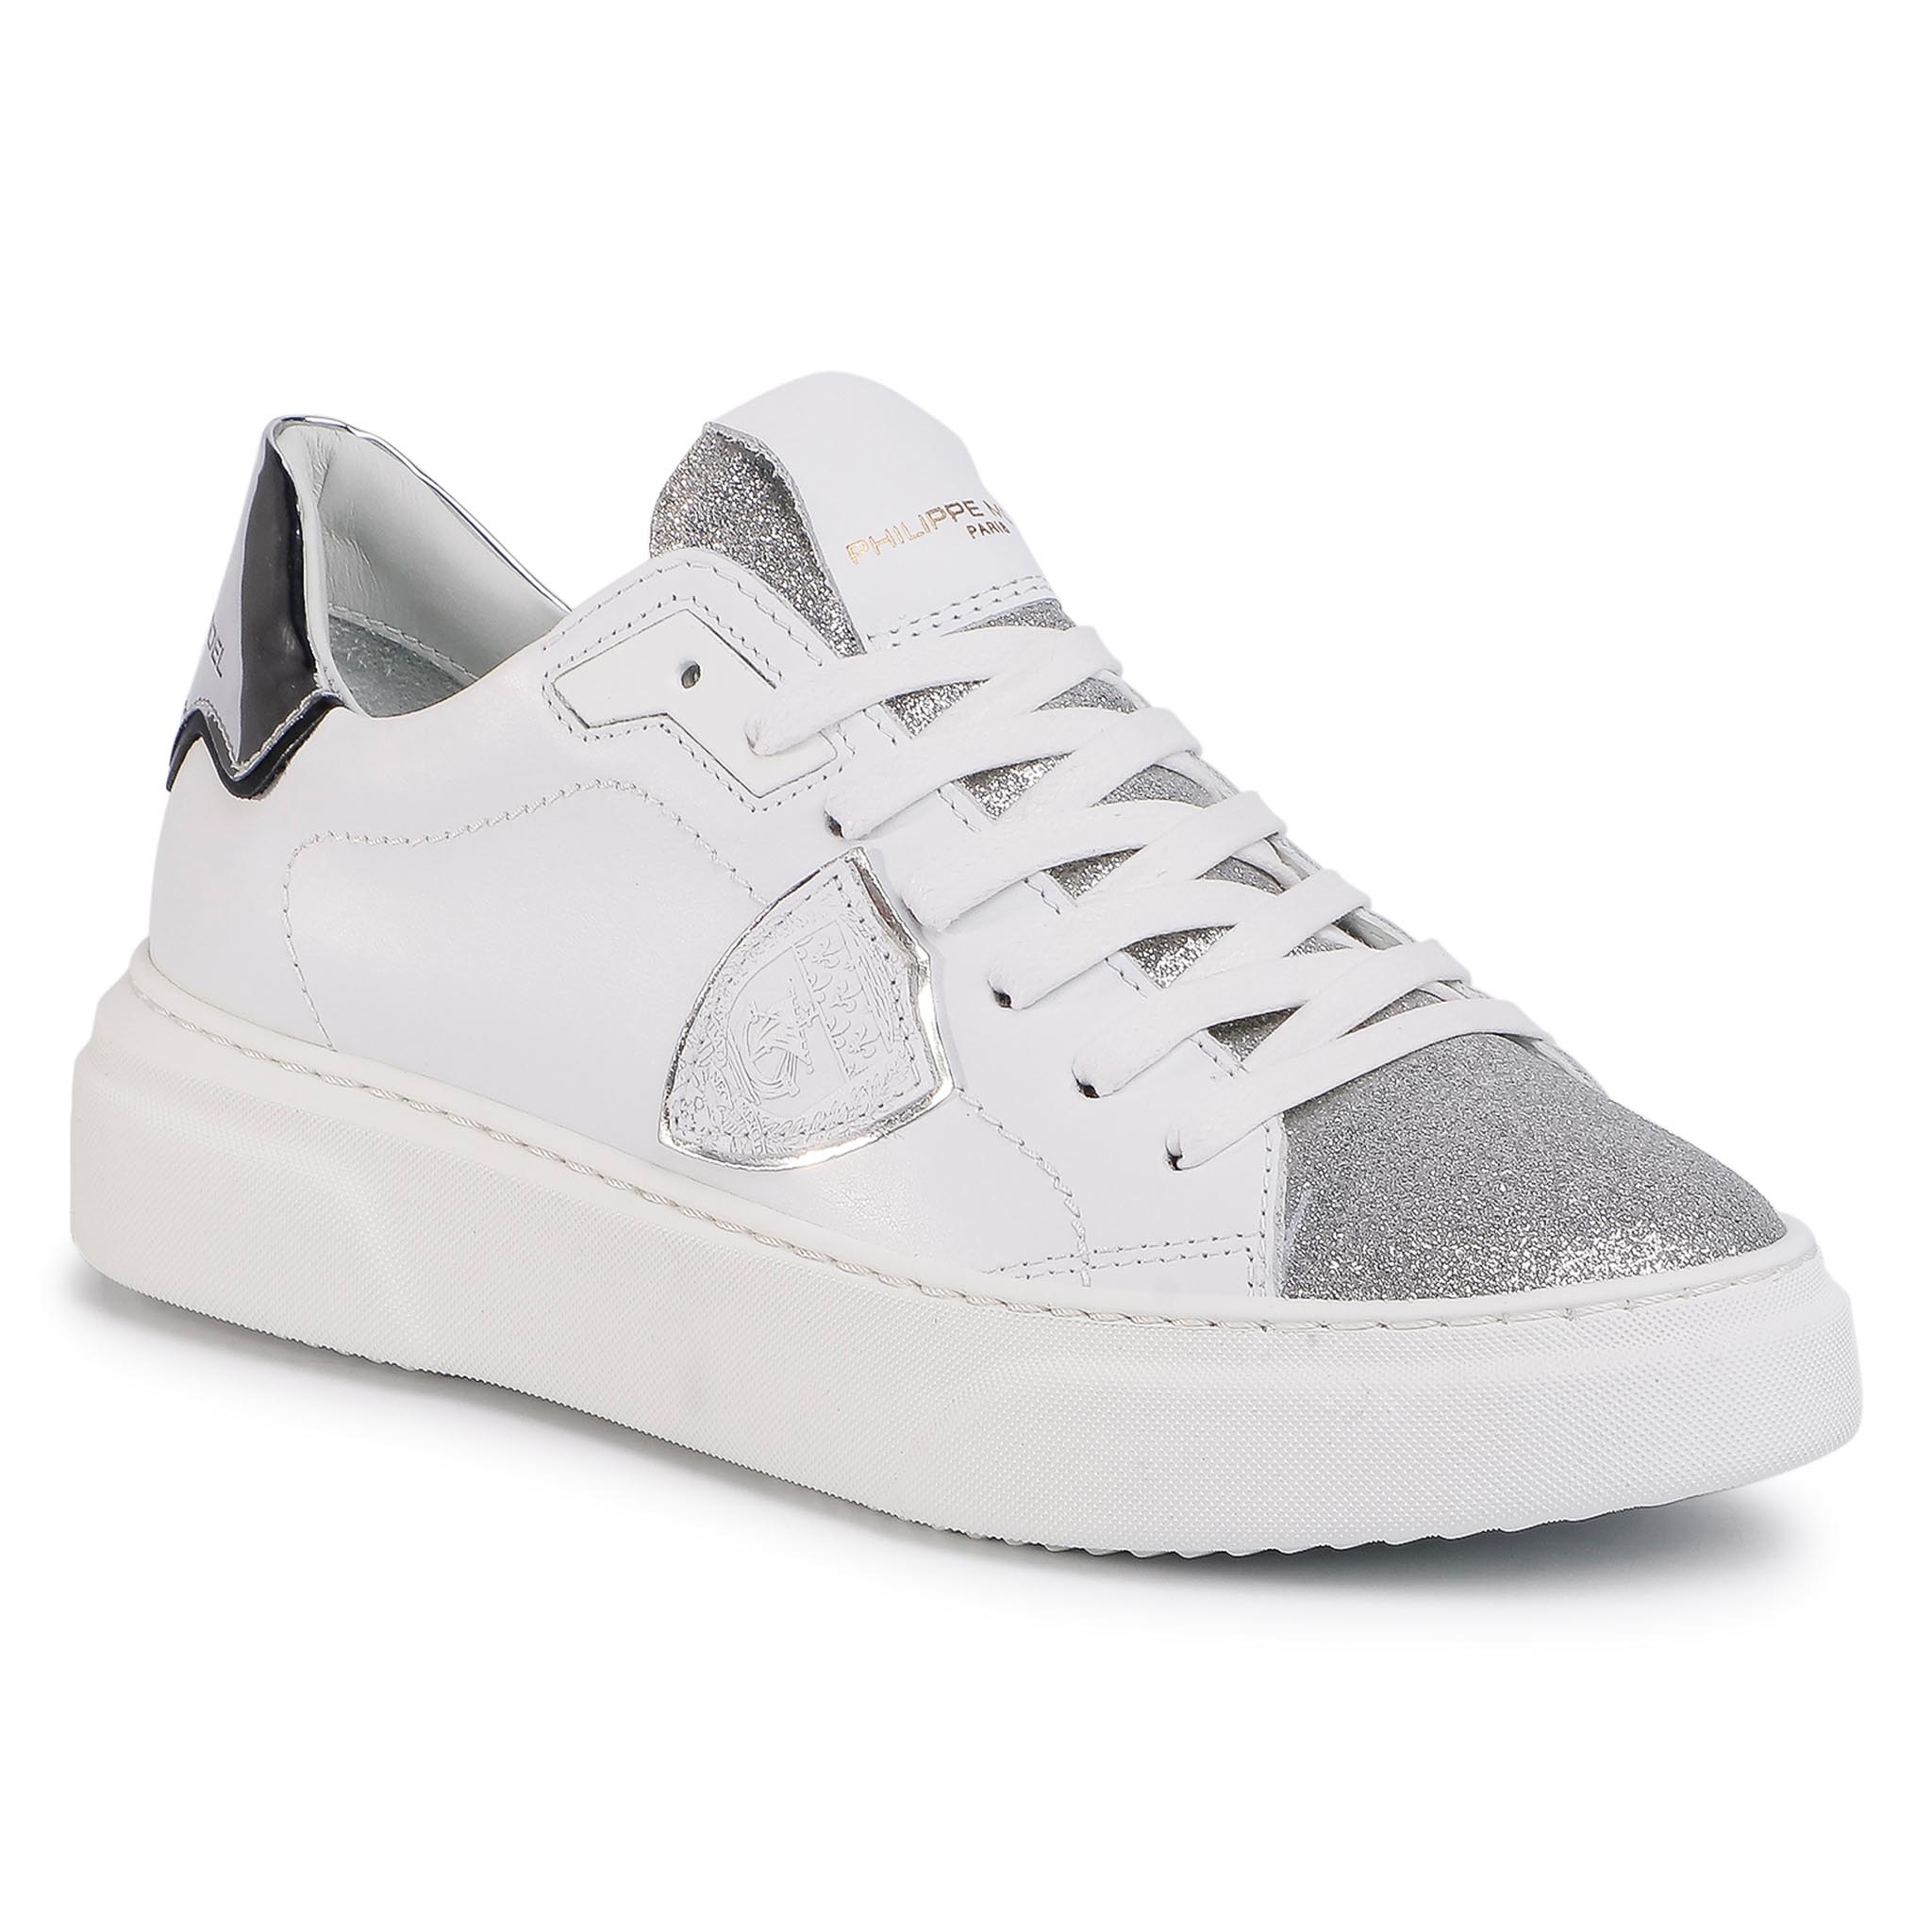 Sneakers PHILIPPE MODEL - Temple BYLD VG01 Blanc Argent